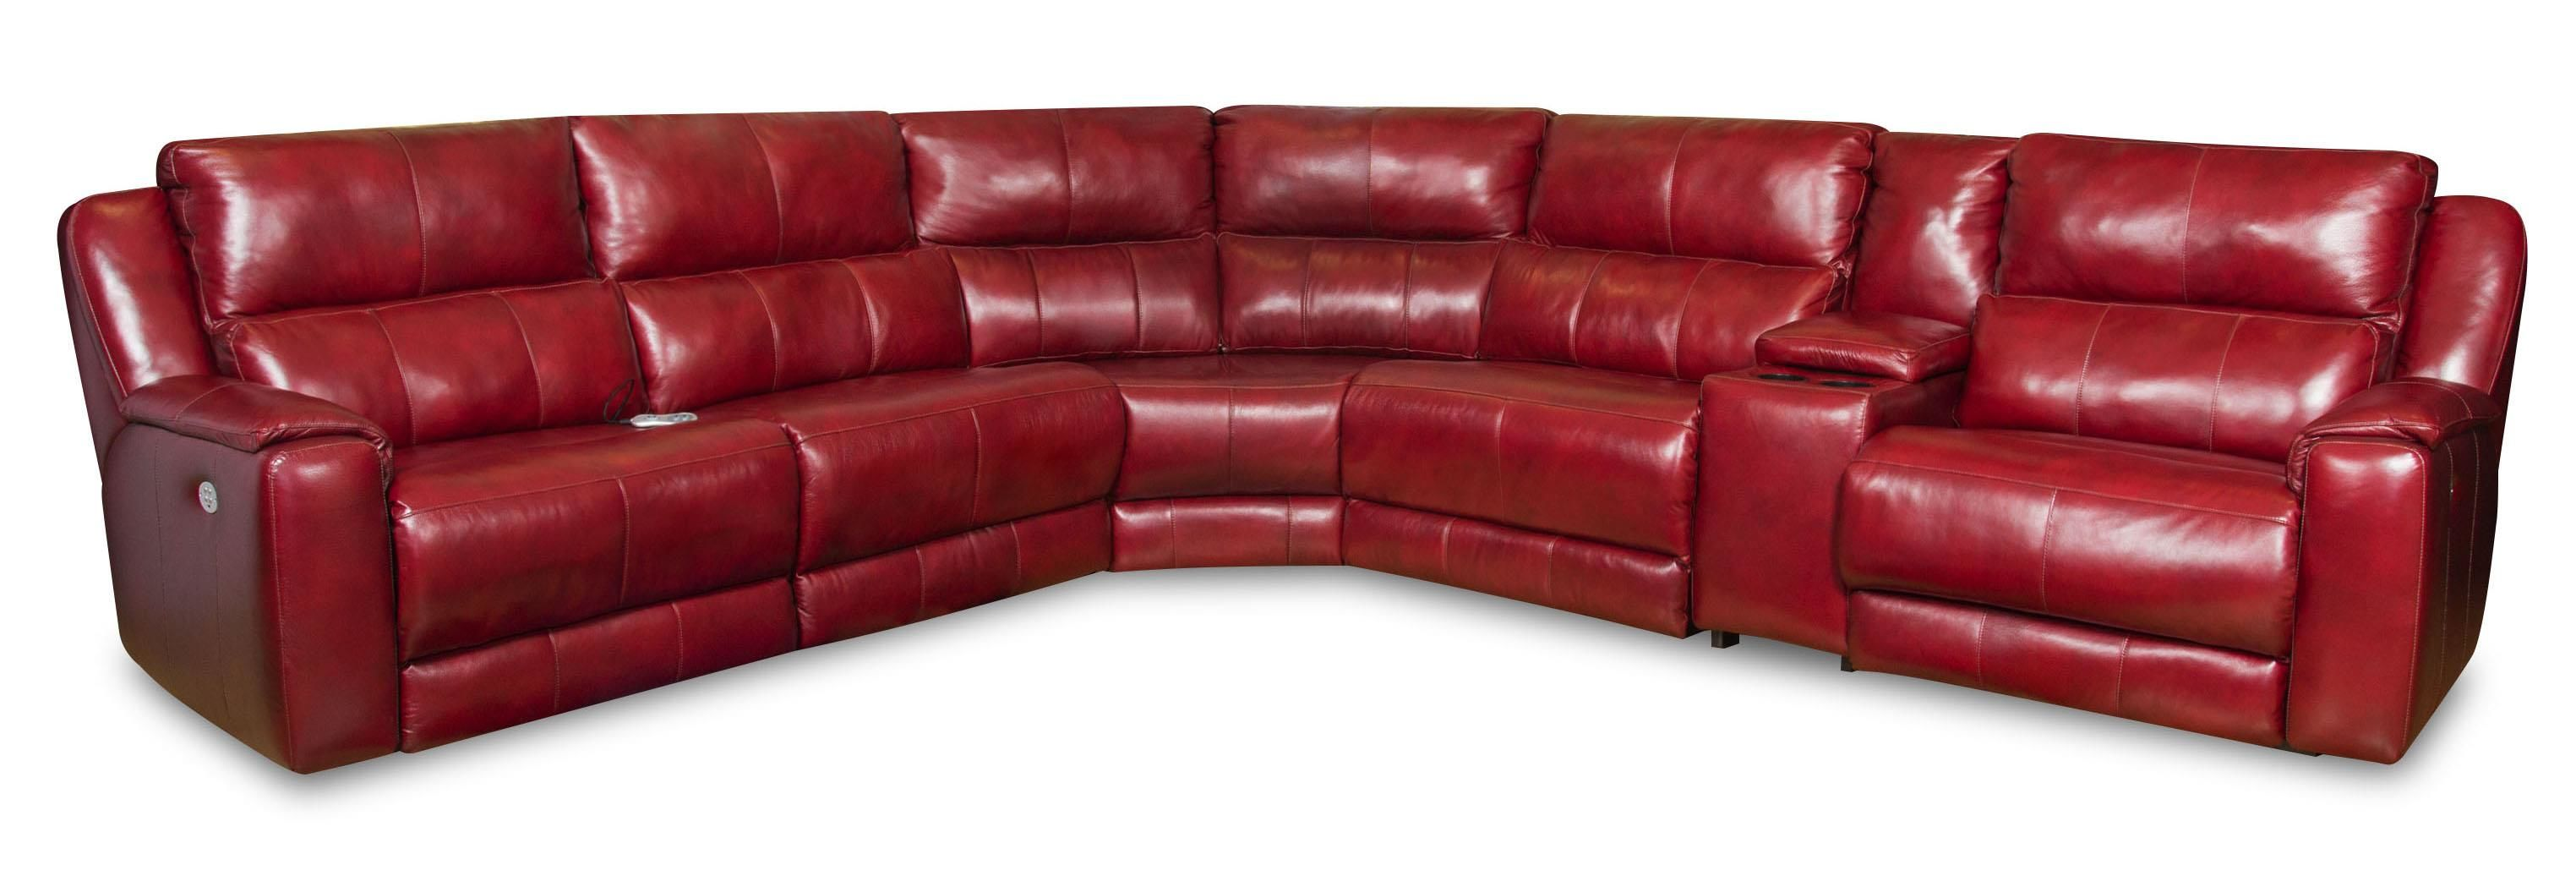 luxury sectional sofas with recliners and cup holders collection-Finest Sectional sofas with Recliners and Cup Holders Concept